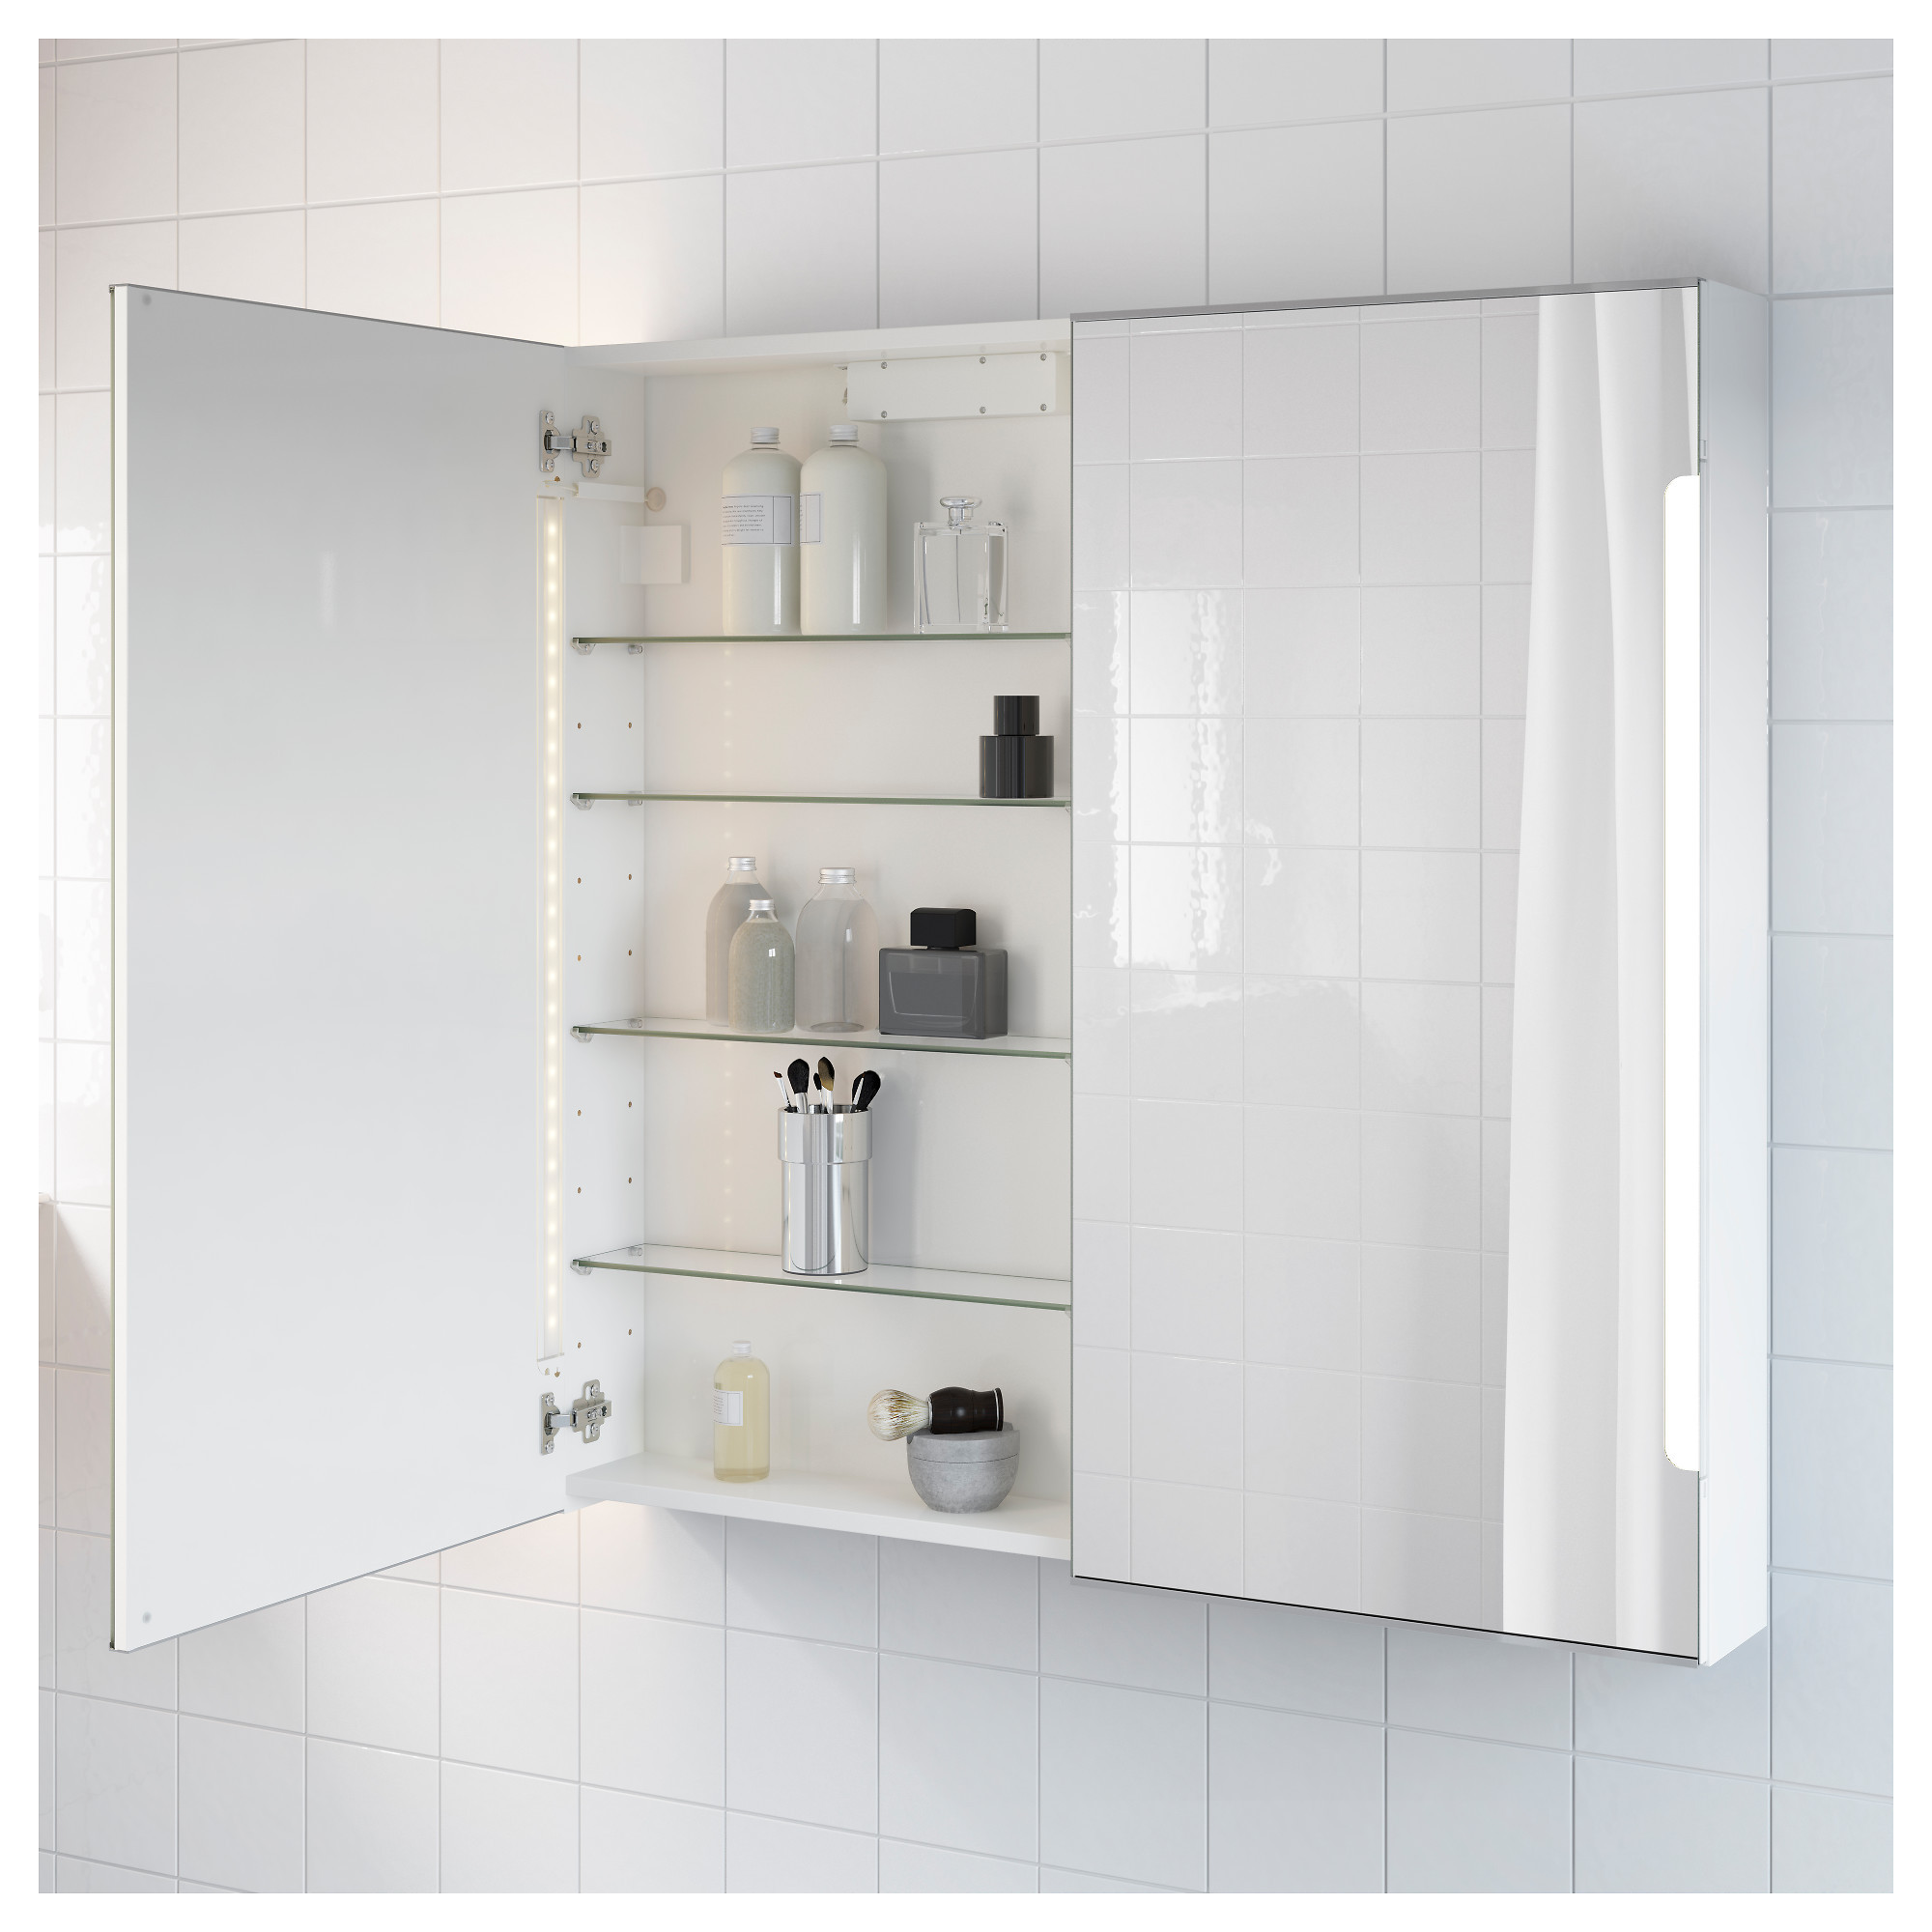 Zeus Illuminated Bathroom Mirror Cabinet Elegant Ikea Storjorm Mirror Cabinet W 2 Doors & Light White